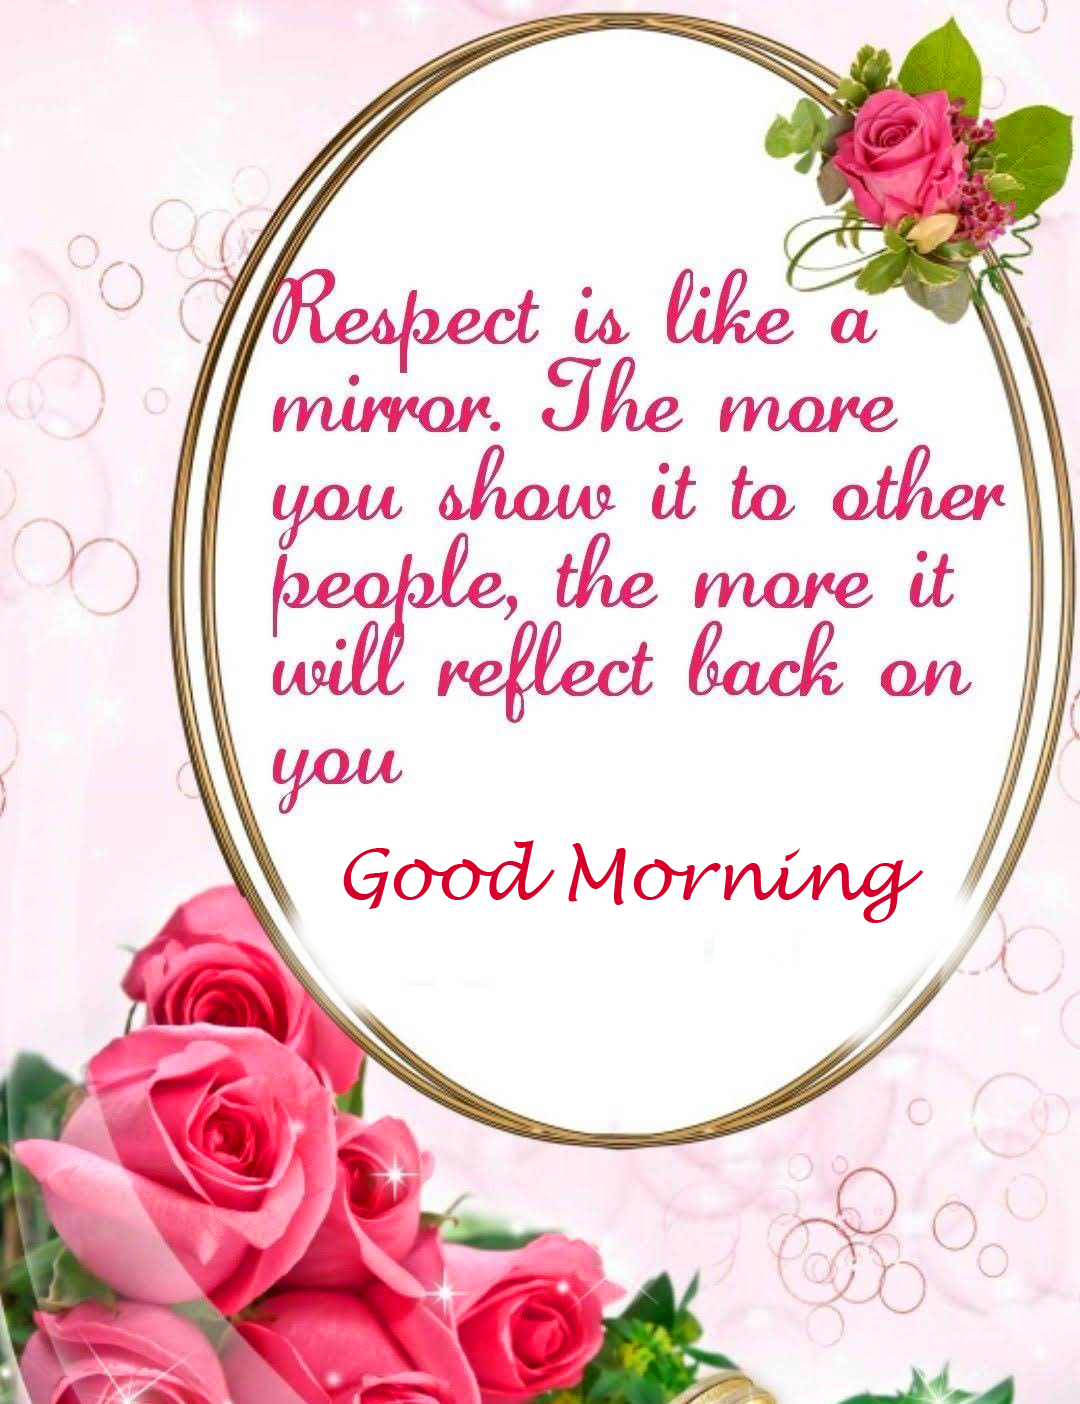 Good Morning Wish with Floral Quotes